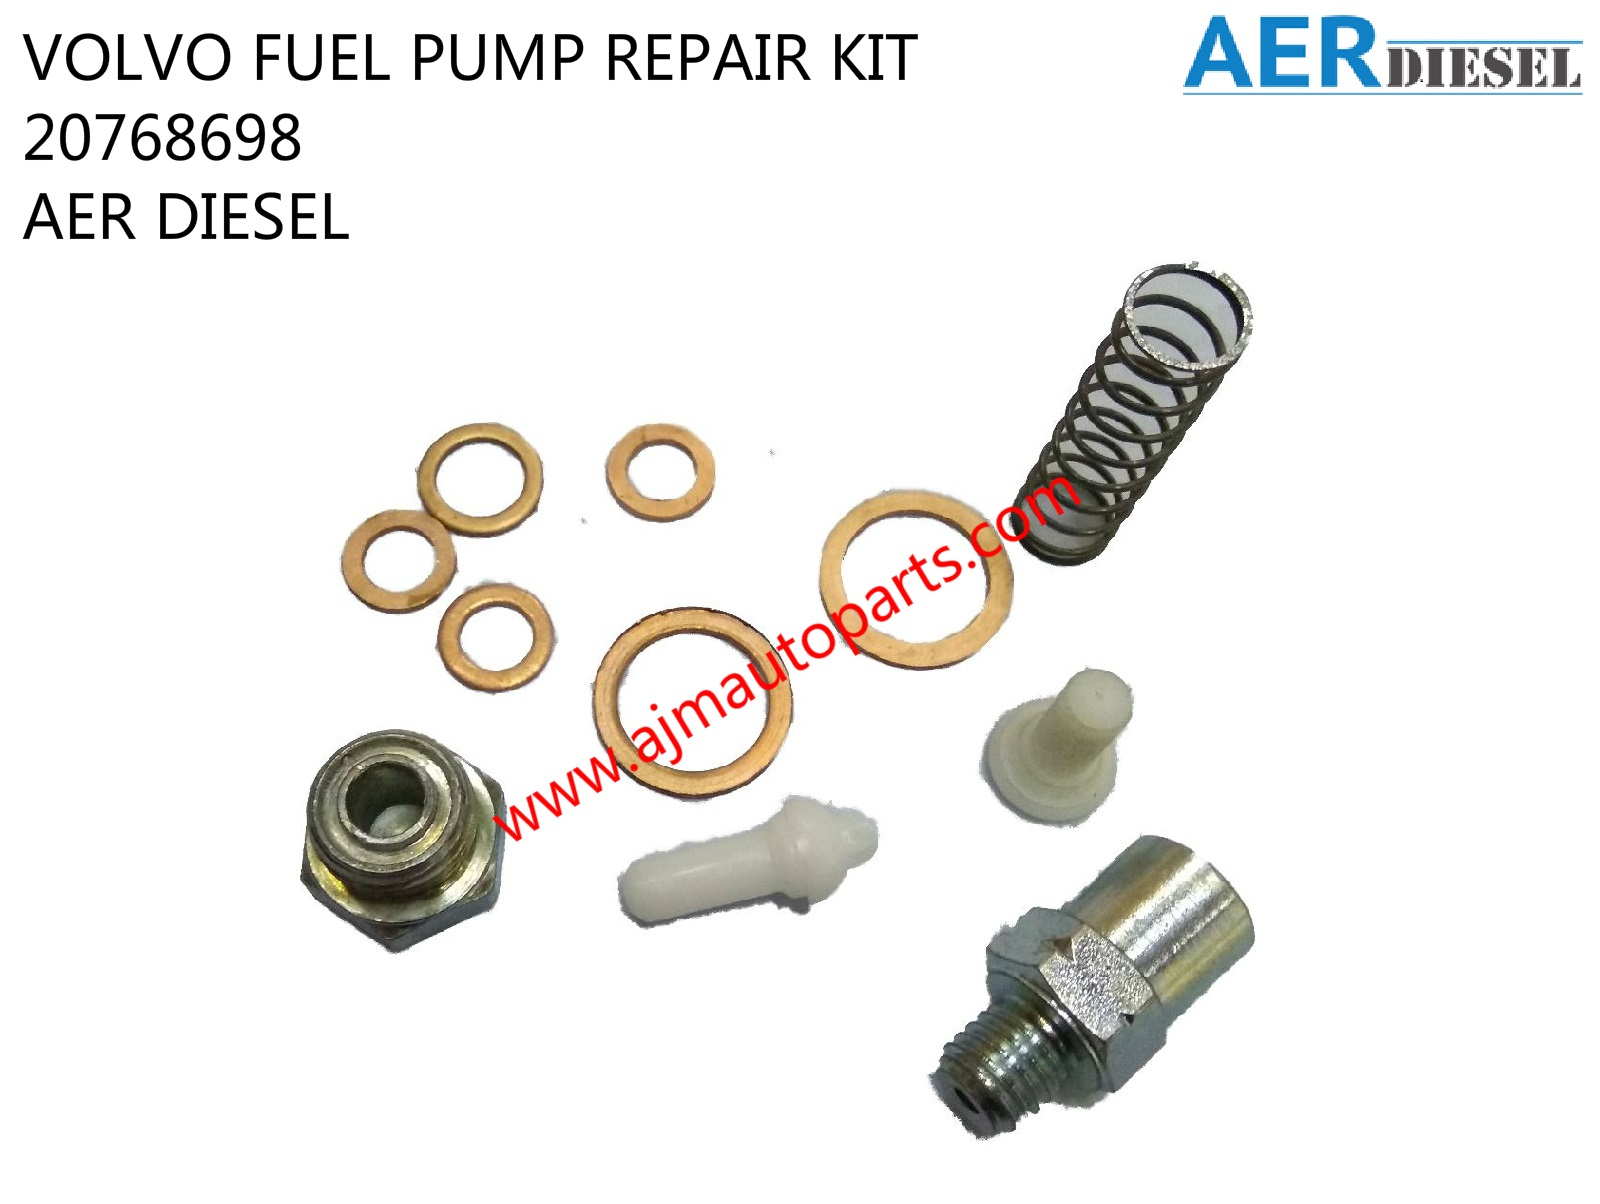 VOLVO FUEL PUMP REPAIR KIT-20768698